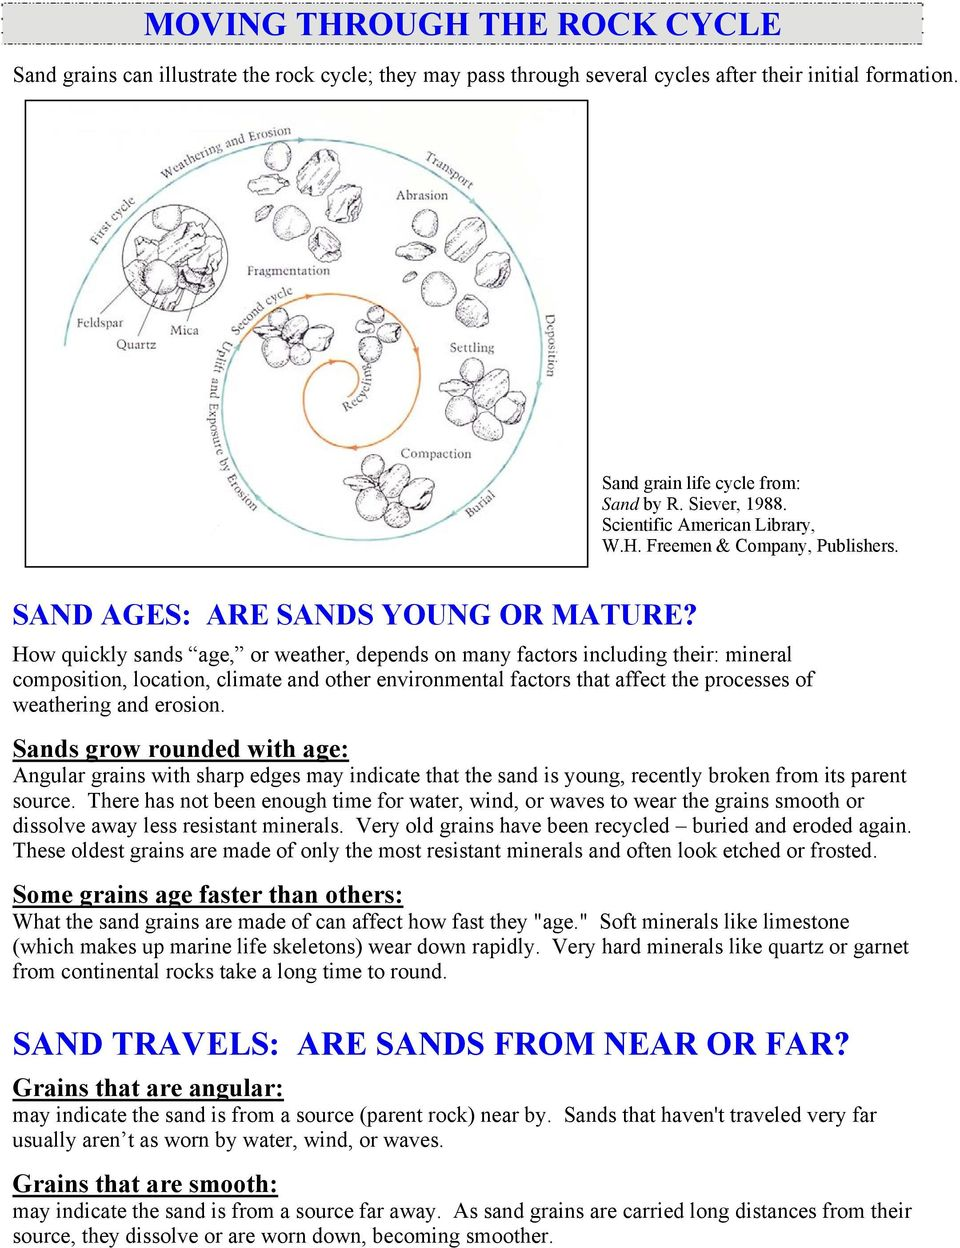 How quickly sands age, or weather, depends on many factors including their: mineral composition, location, climate and other environmental factors that affect the processes of weathering and erosion.